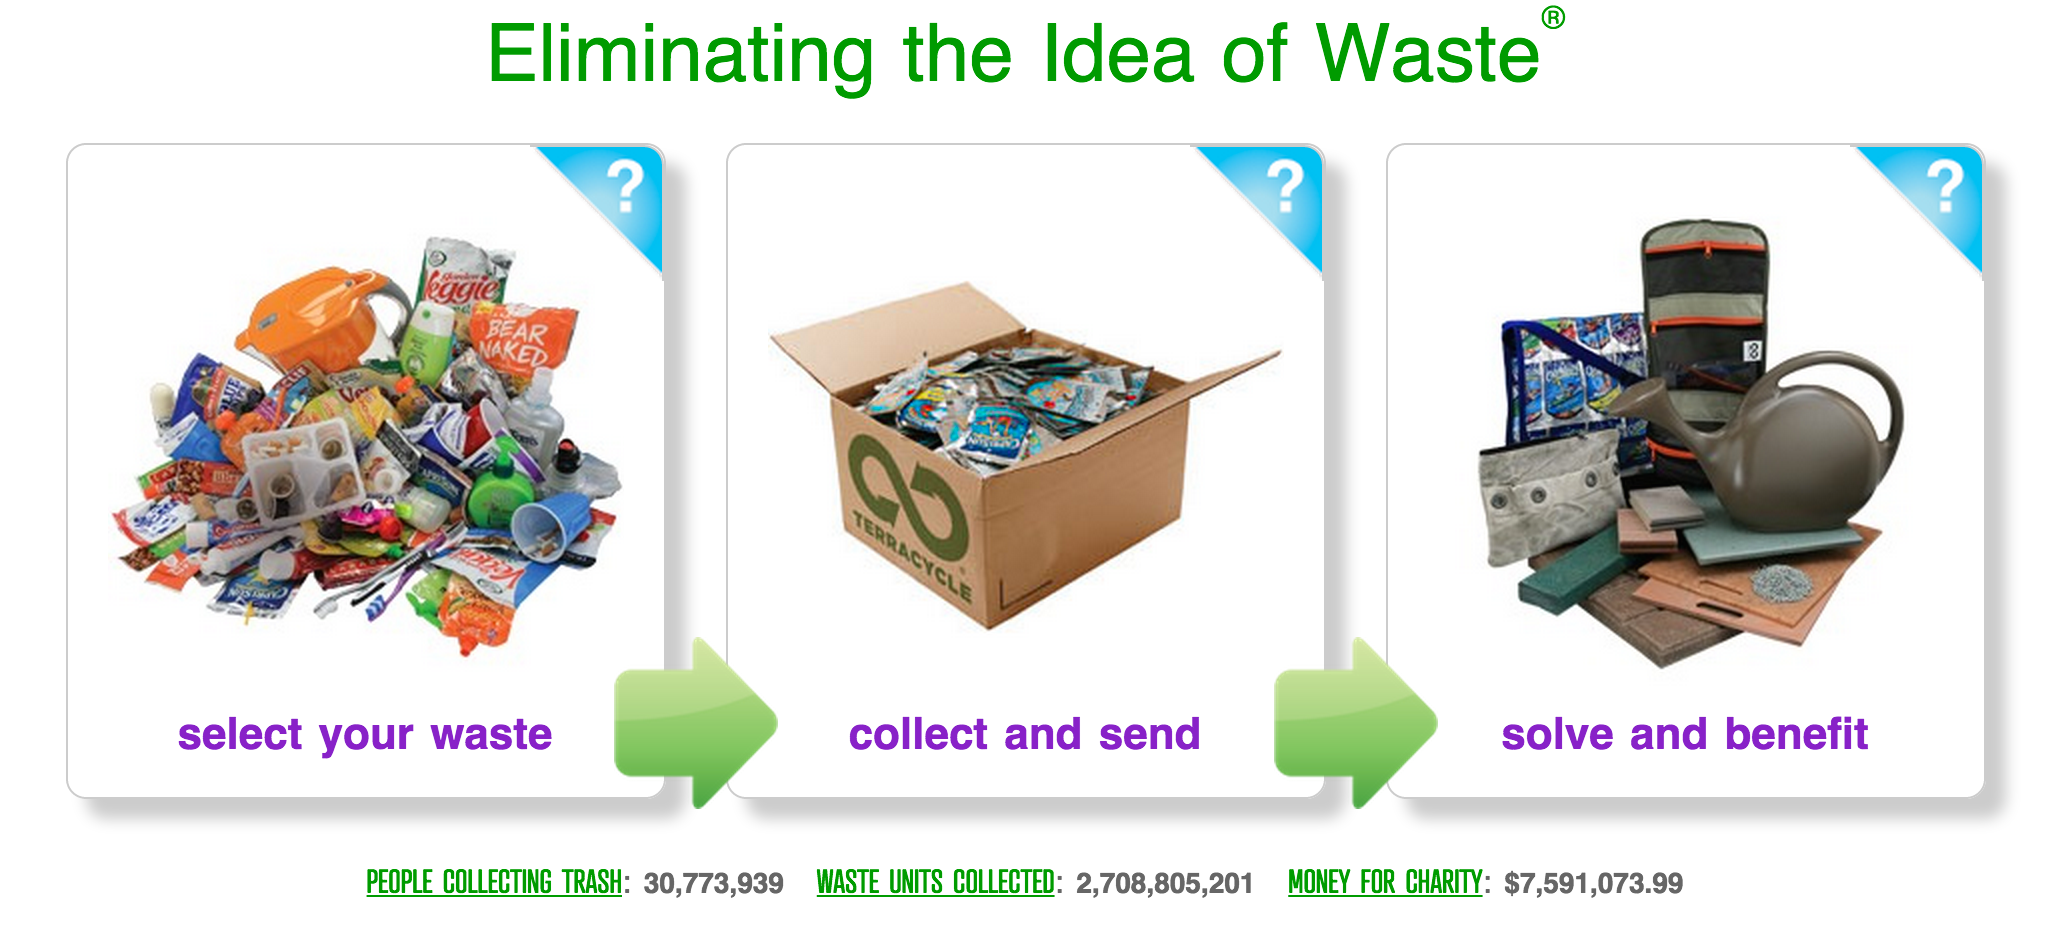 Eliminating the Idea of Waste